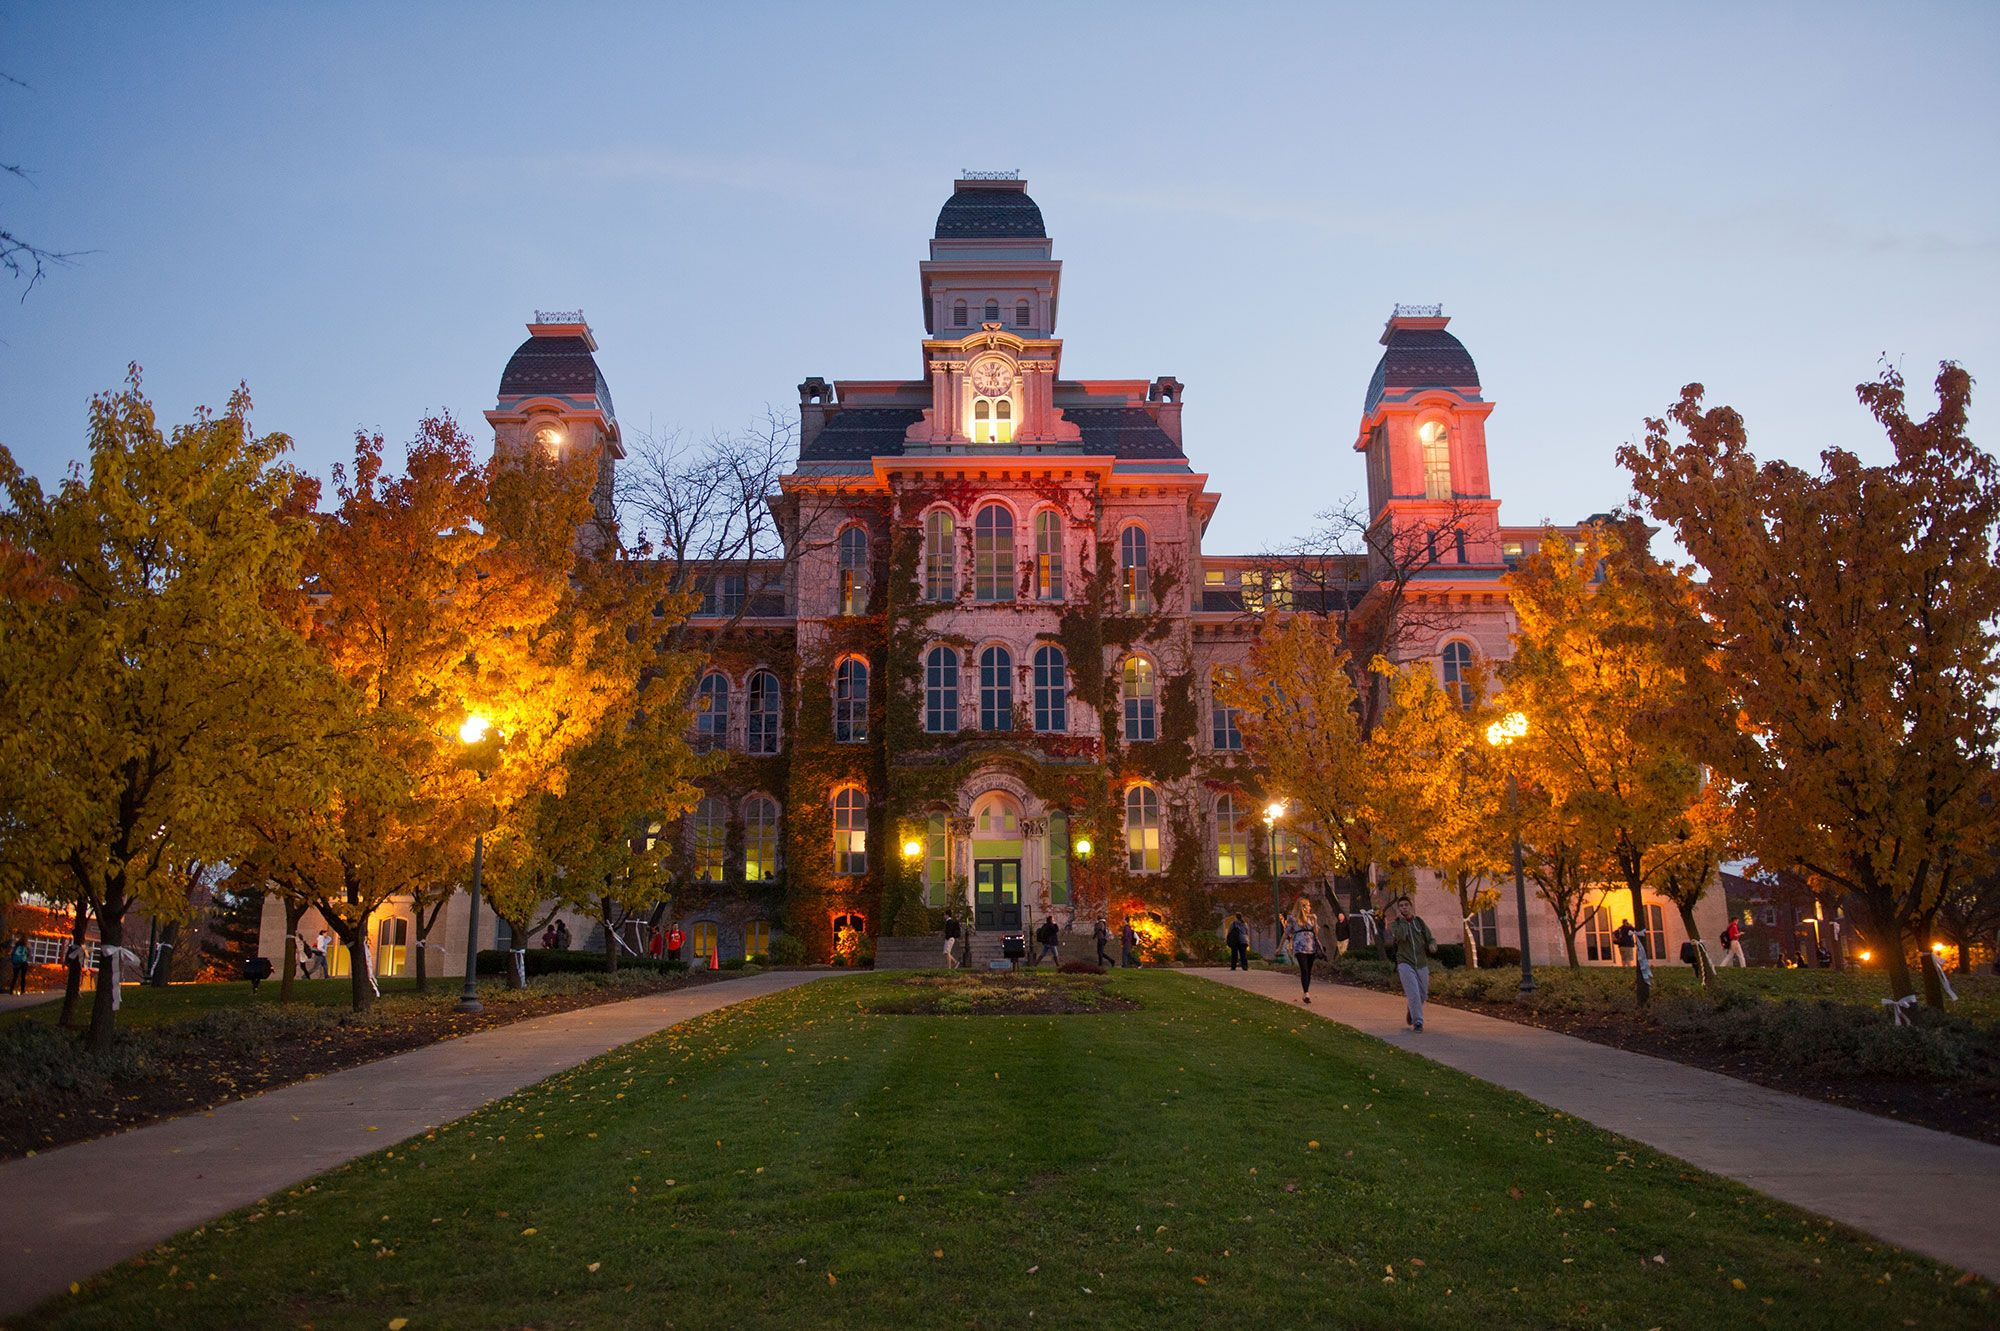 syracuse university admissions requirements